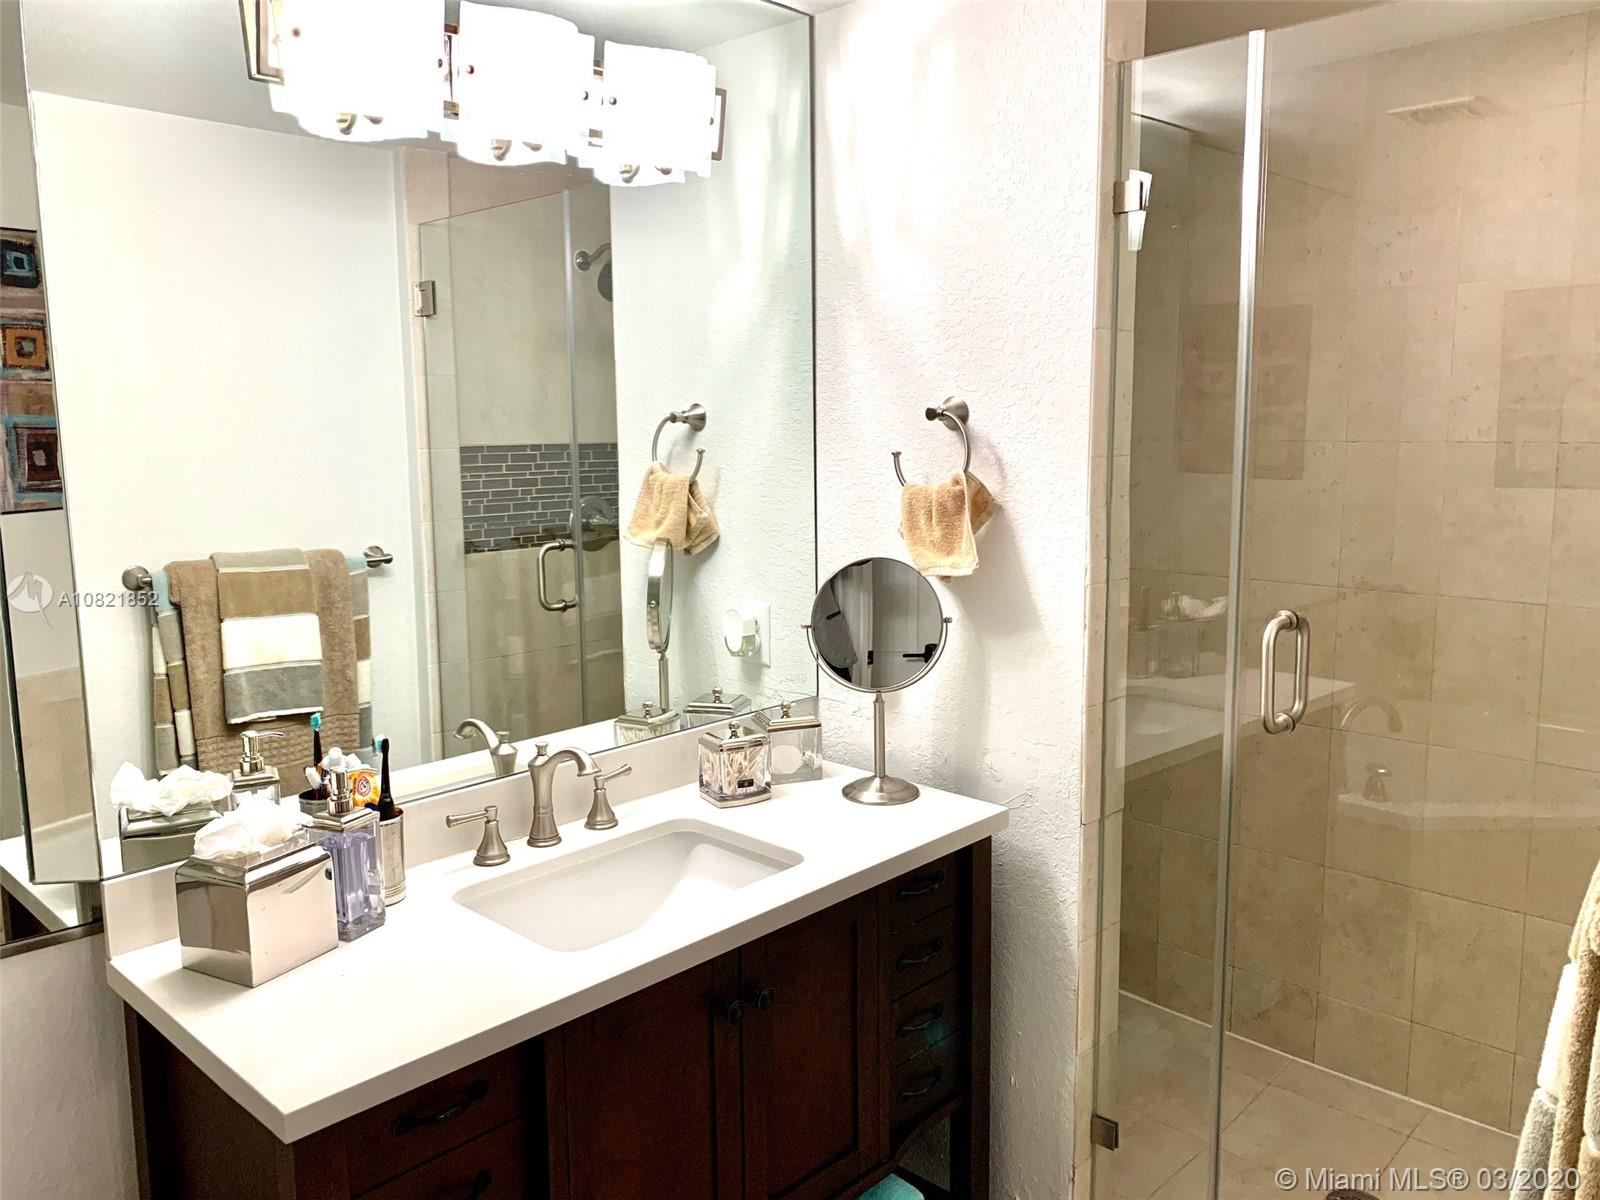 Photo 18 of Listing MLS a10821852 in 1830 Radius Dr #305 Hollywood FL 33020